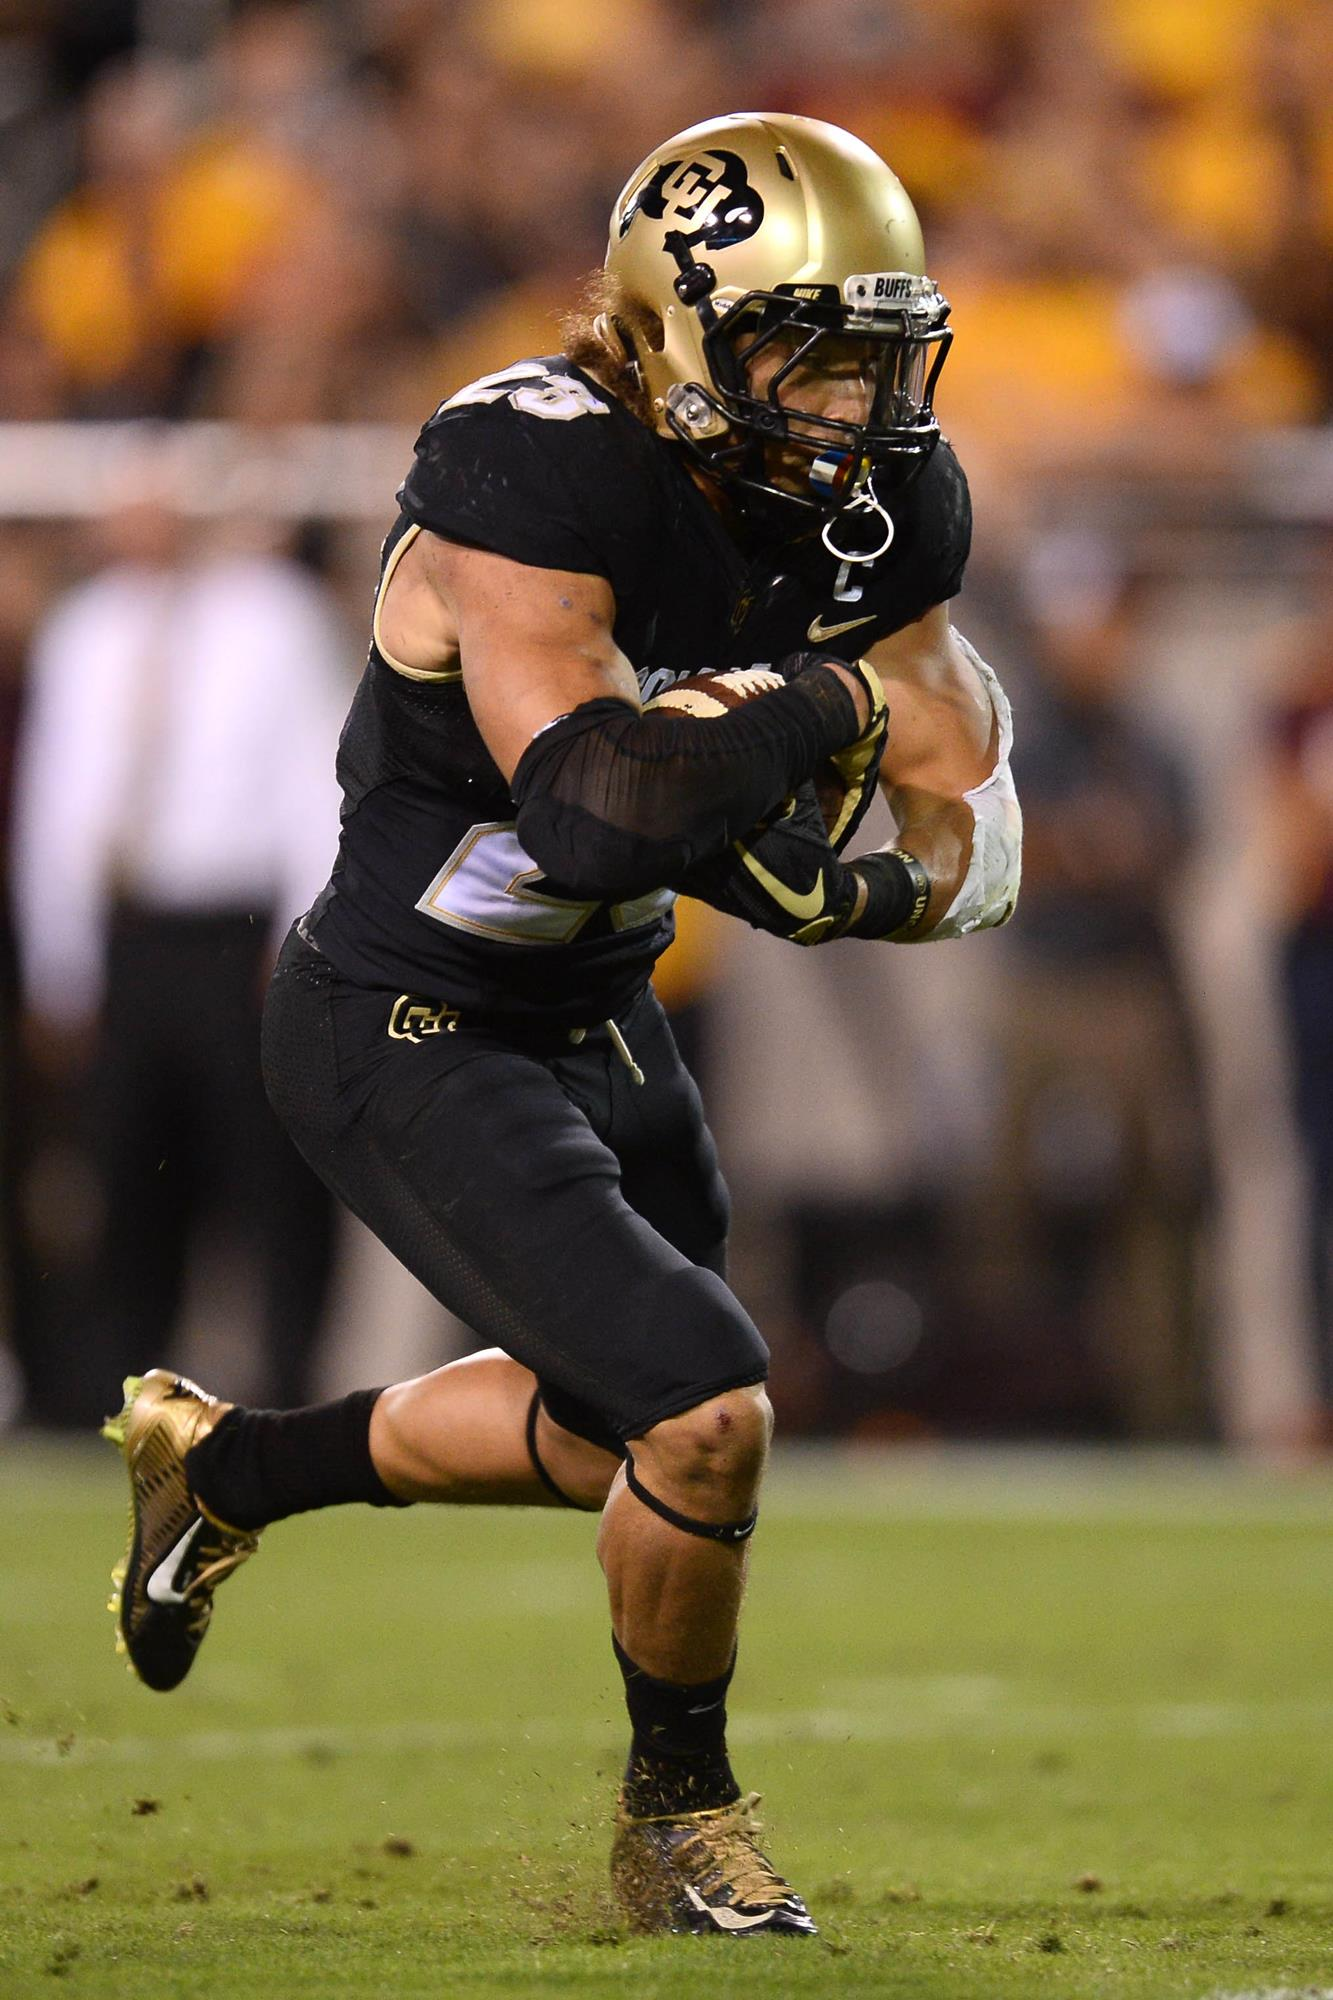 factory authentic 36f3e 8fa71 Phillip Lindsay - Football - University of Colorado Athletics